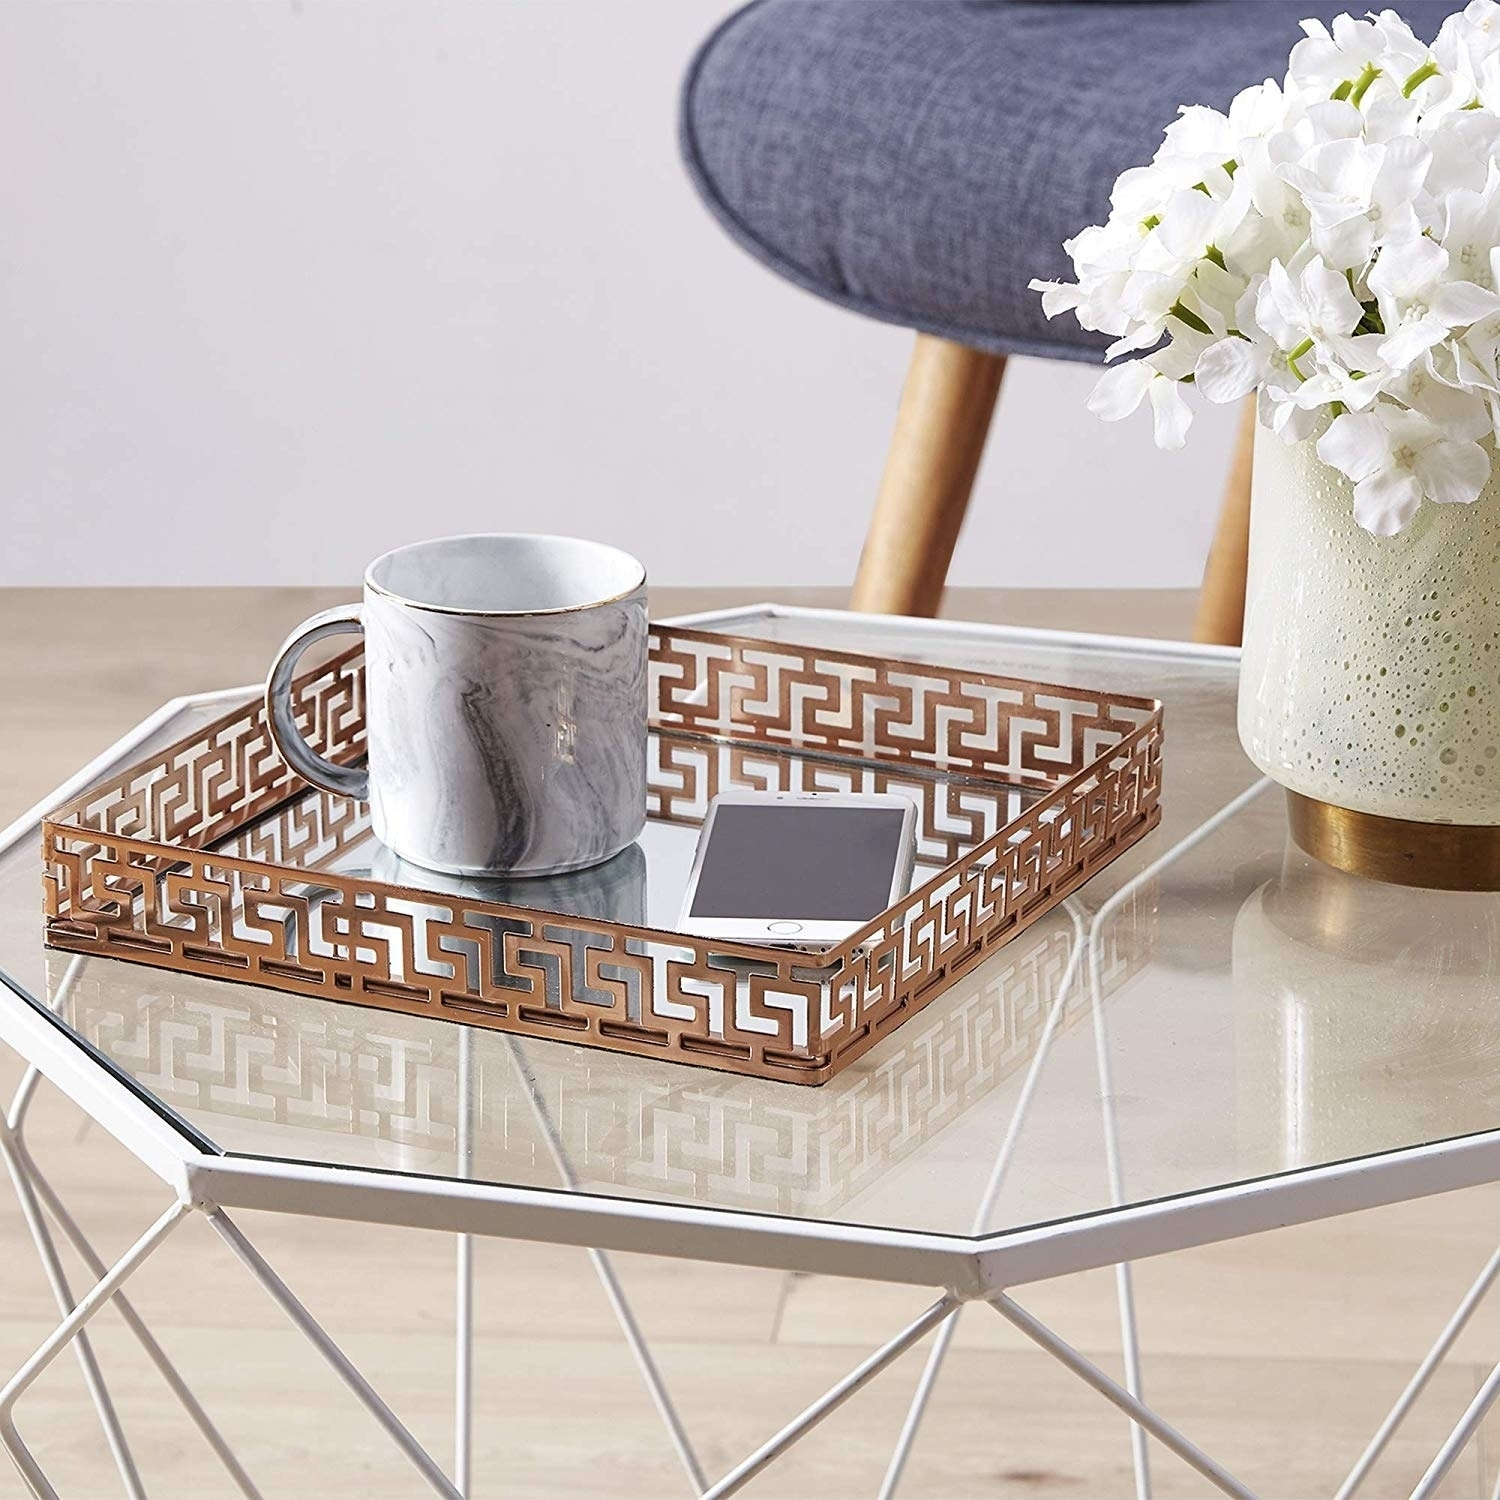 Shop Silver Orchid Costello Rose Gold Metal Mirror Tray On Sale Overstock 28560638